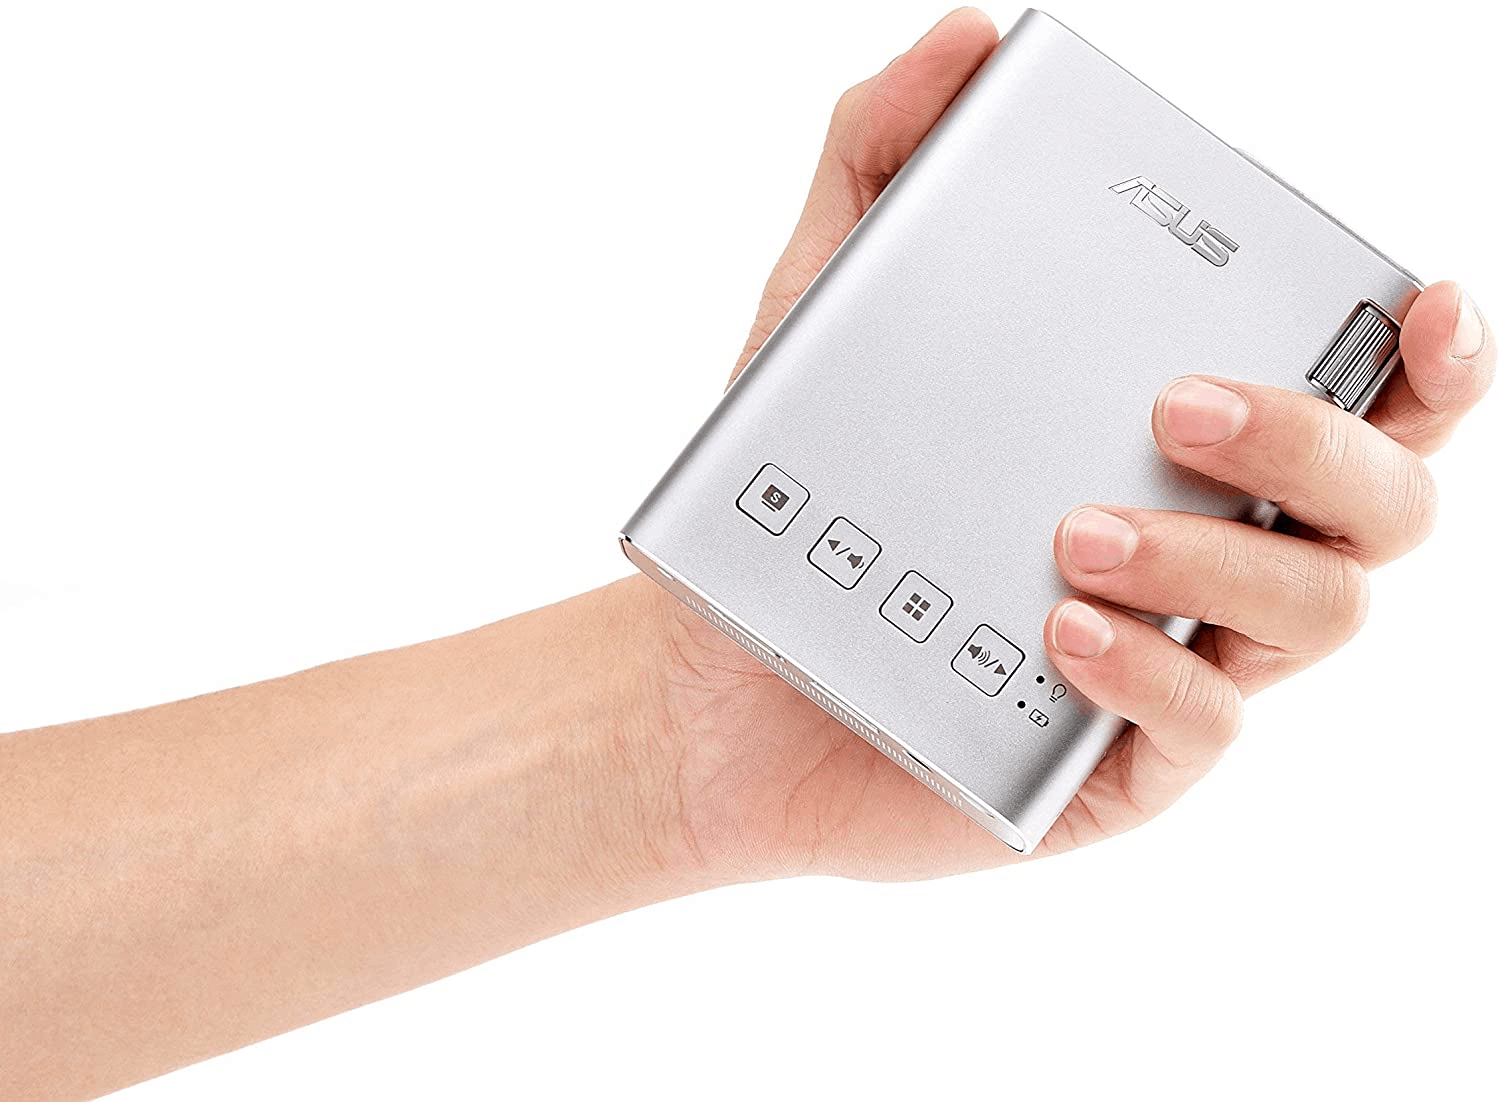 ASUS ZenBeam E1 Pocket Projector is best portable short throw projector singapore